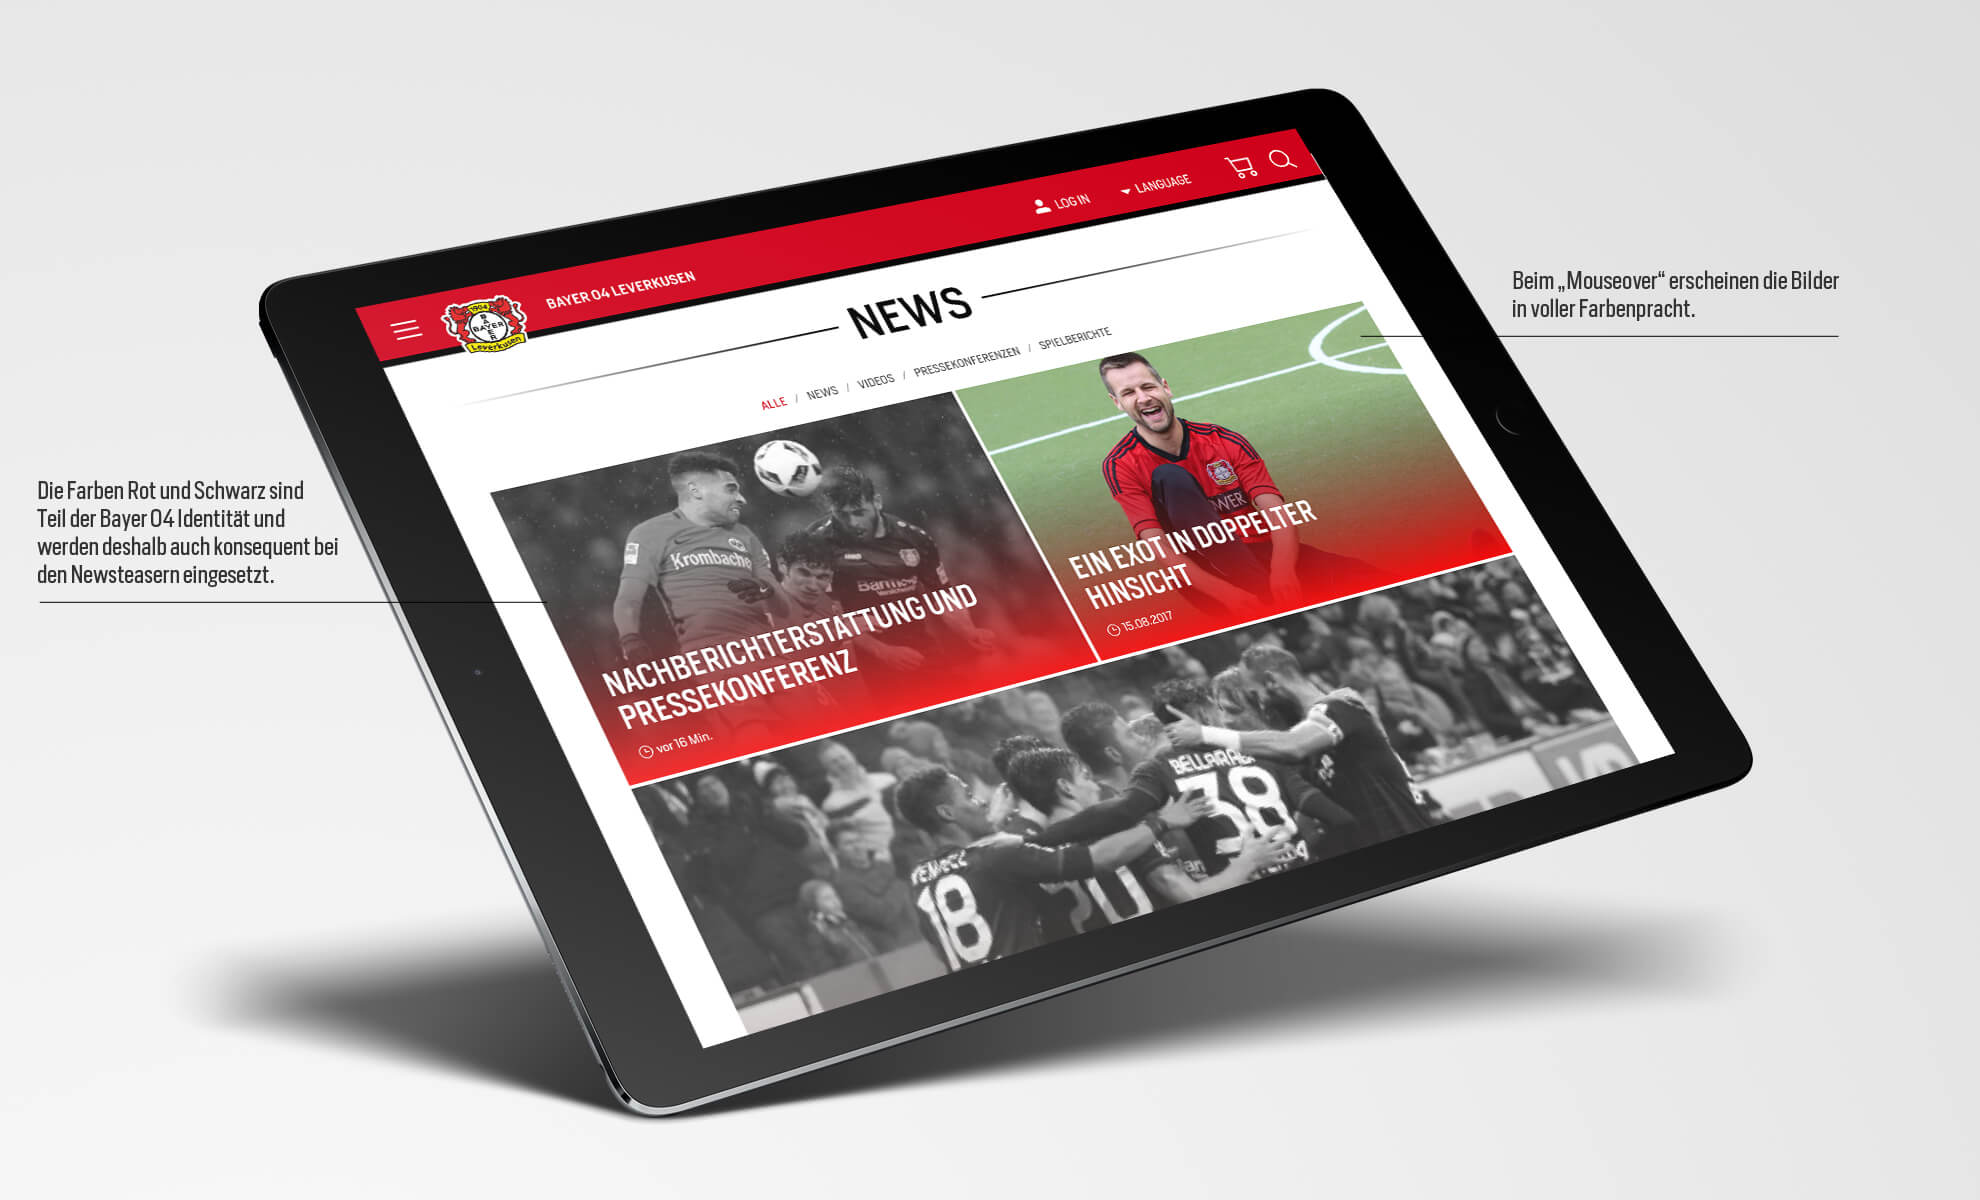 Bayer 04 Leverkusen Website, Relaunch, Redesign, Webdesign, UX, UI, ipad, News Hub